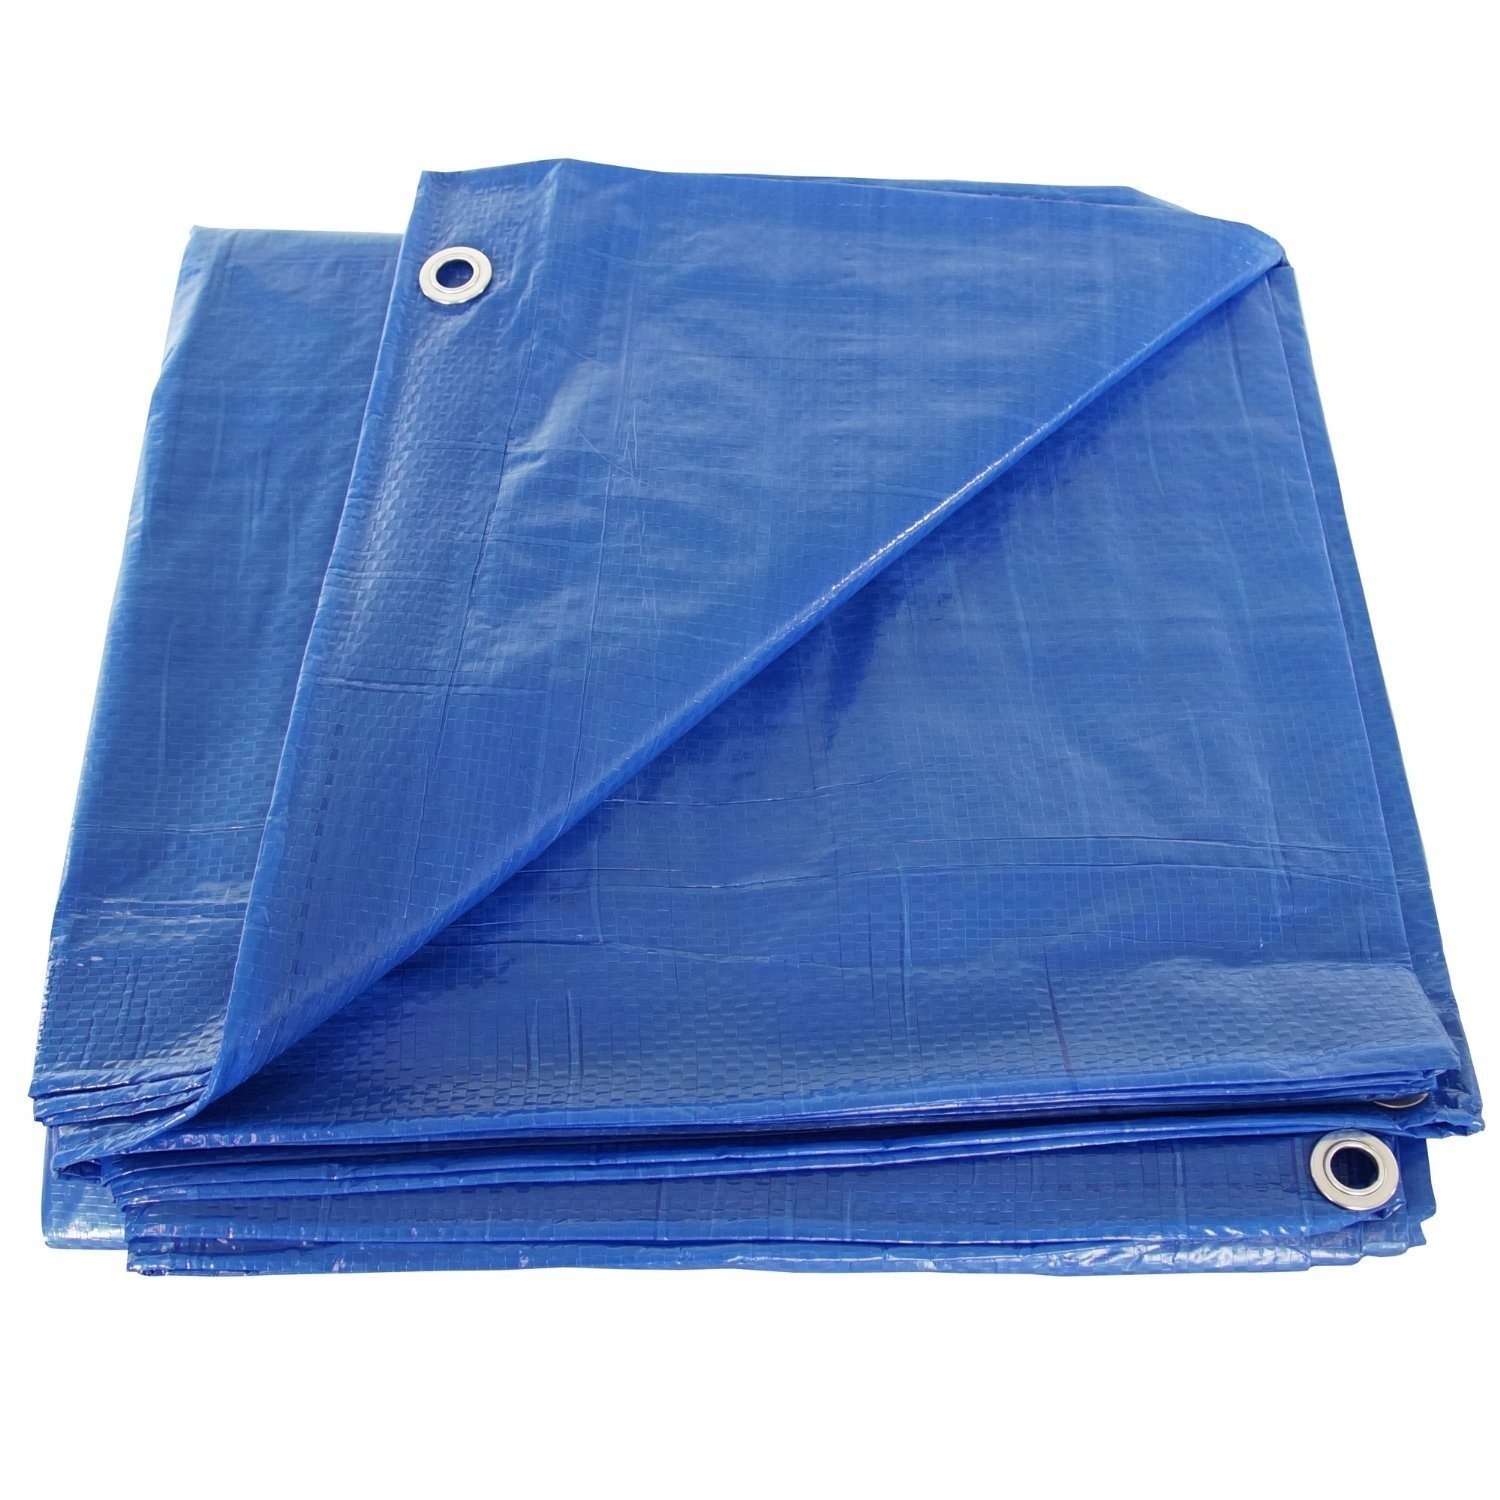 Comfitwear MT-1216-S Poly Tarp Cover, Water Proof Tent Shelter Camping Rv Boat Tarpaulin, Blue